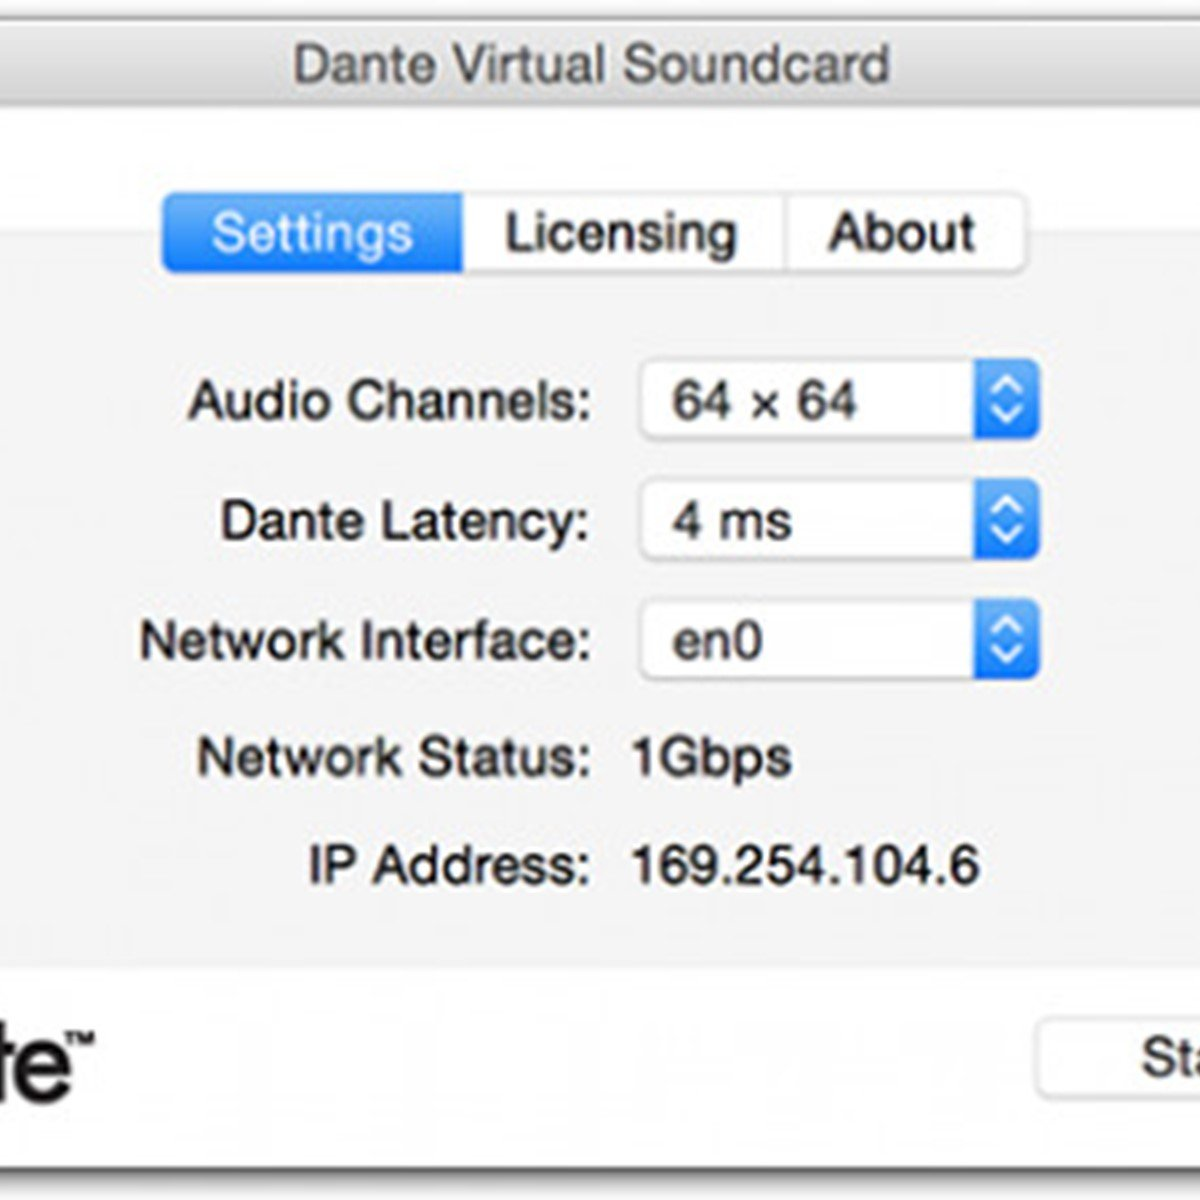 Dante Virtual Soundcard Alternatives and Similar Software